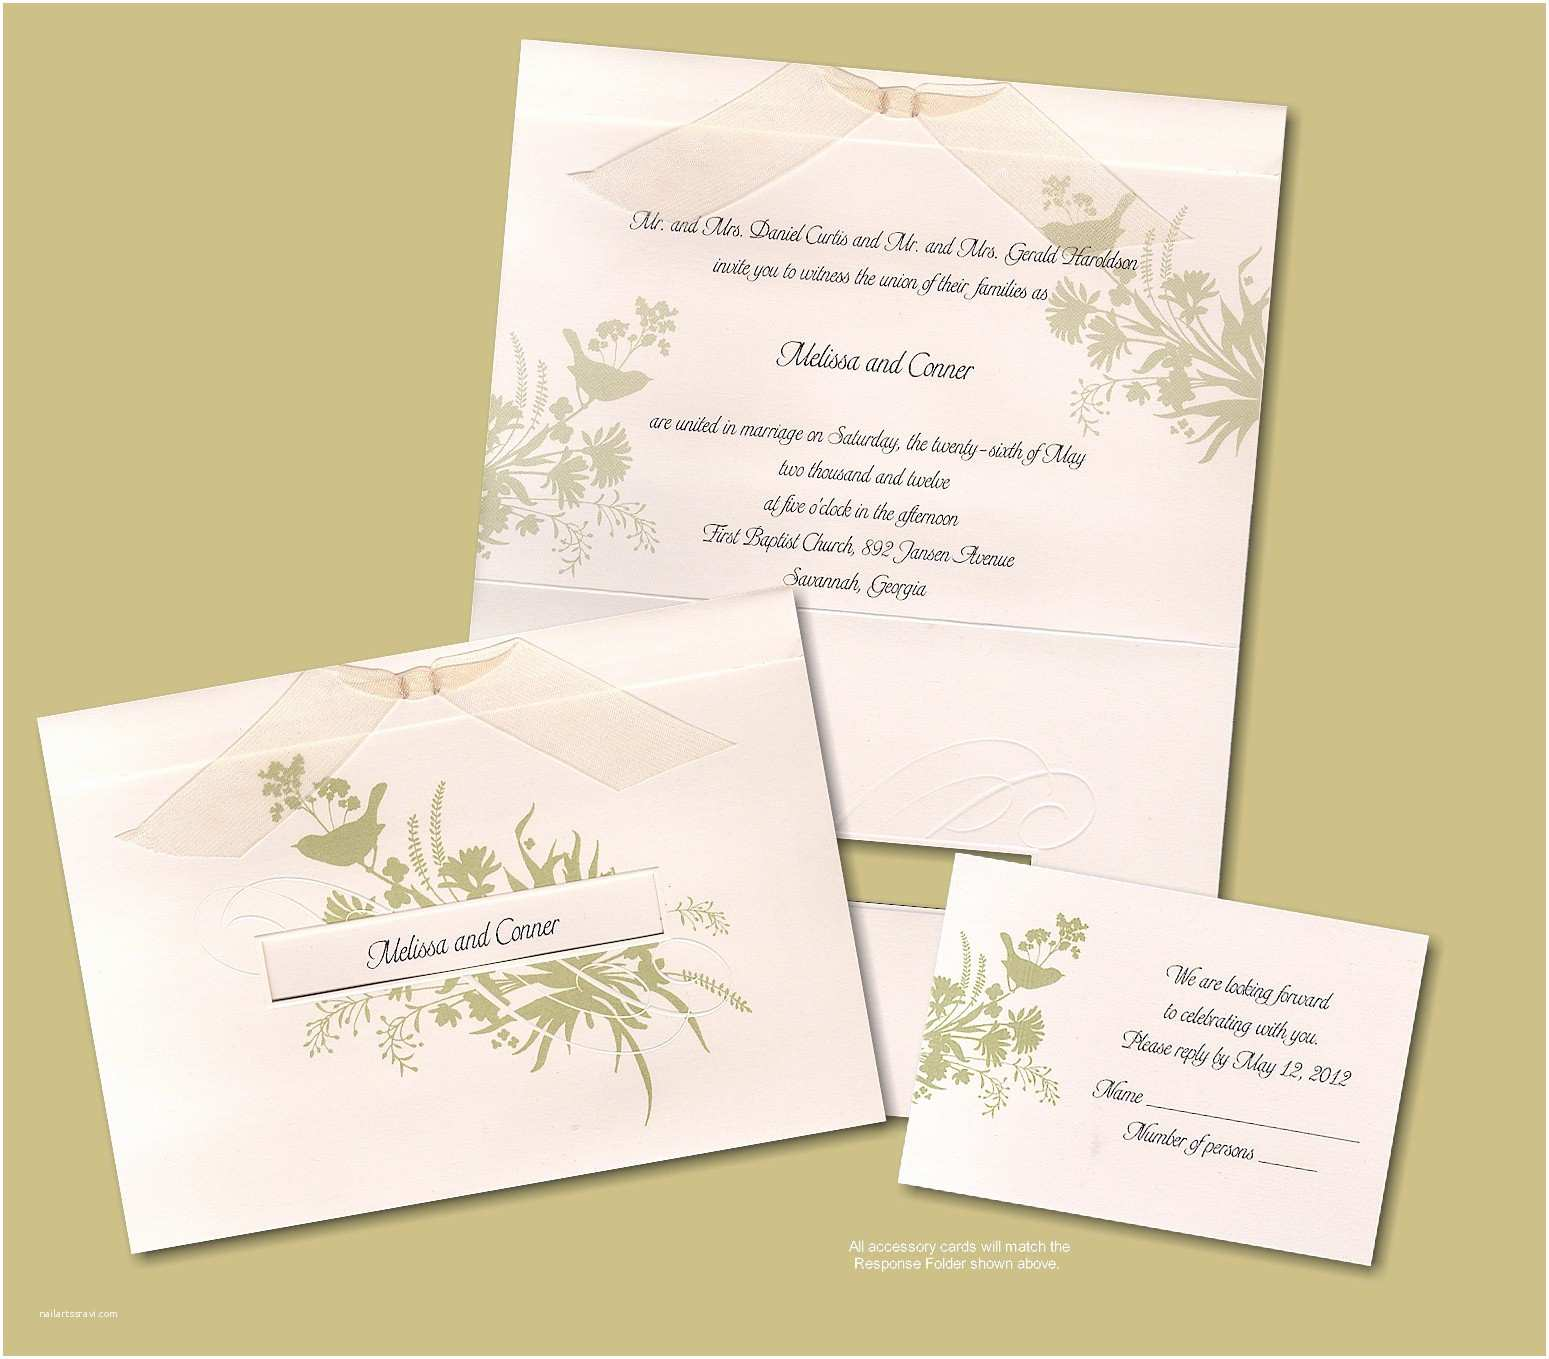 Recycled Paper Wedding Invitations Recycled Paper Wedding Invitations